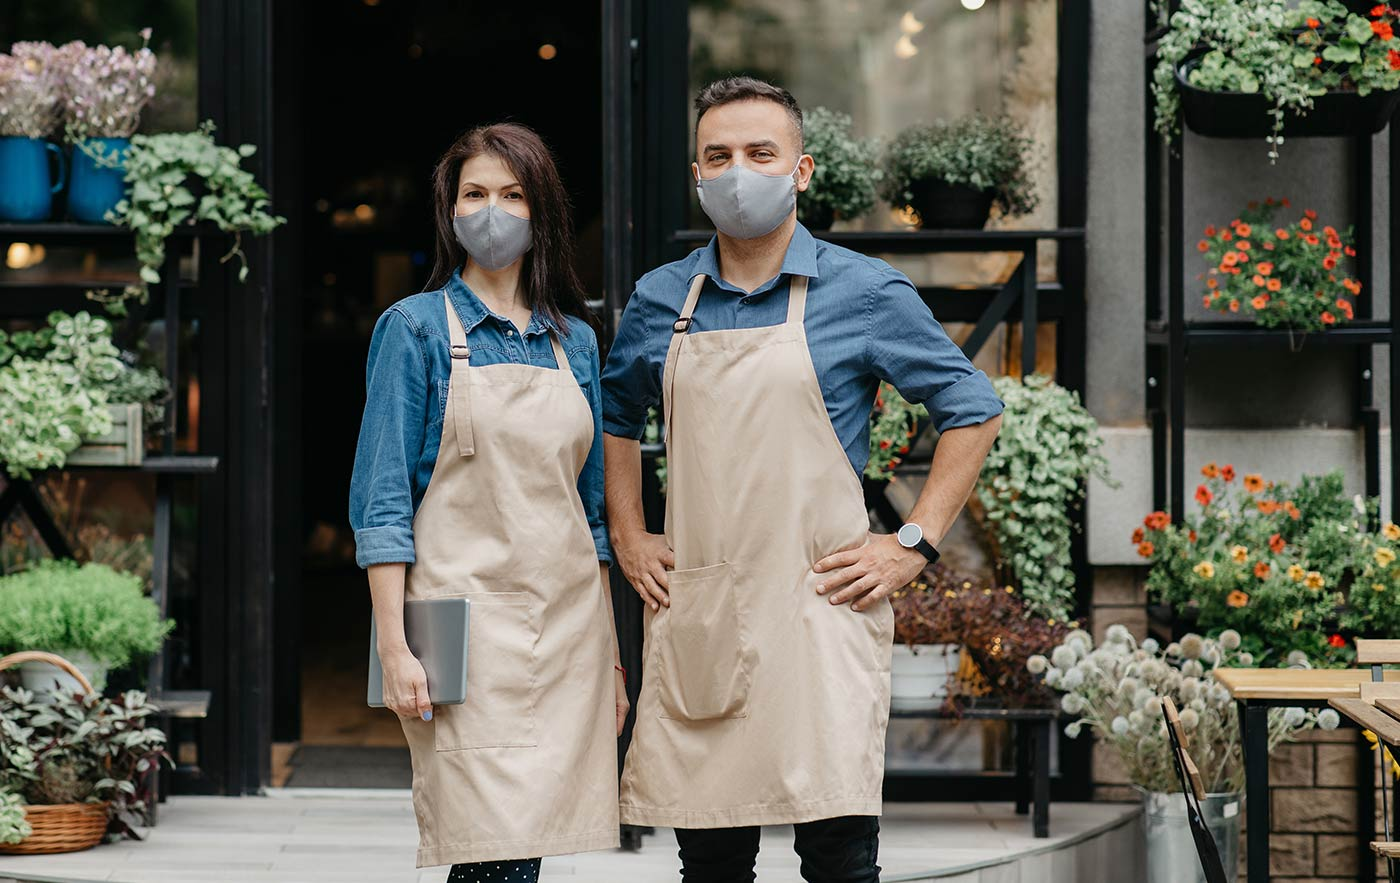 Flower Shop Owners wearing Covid Masks